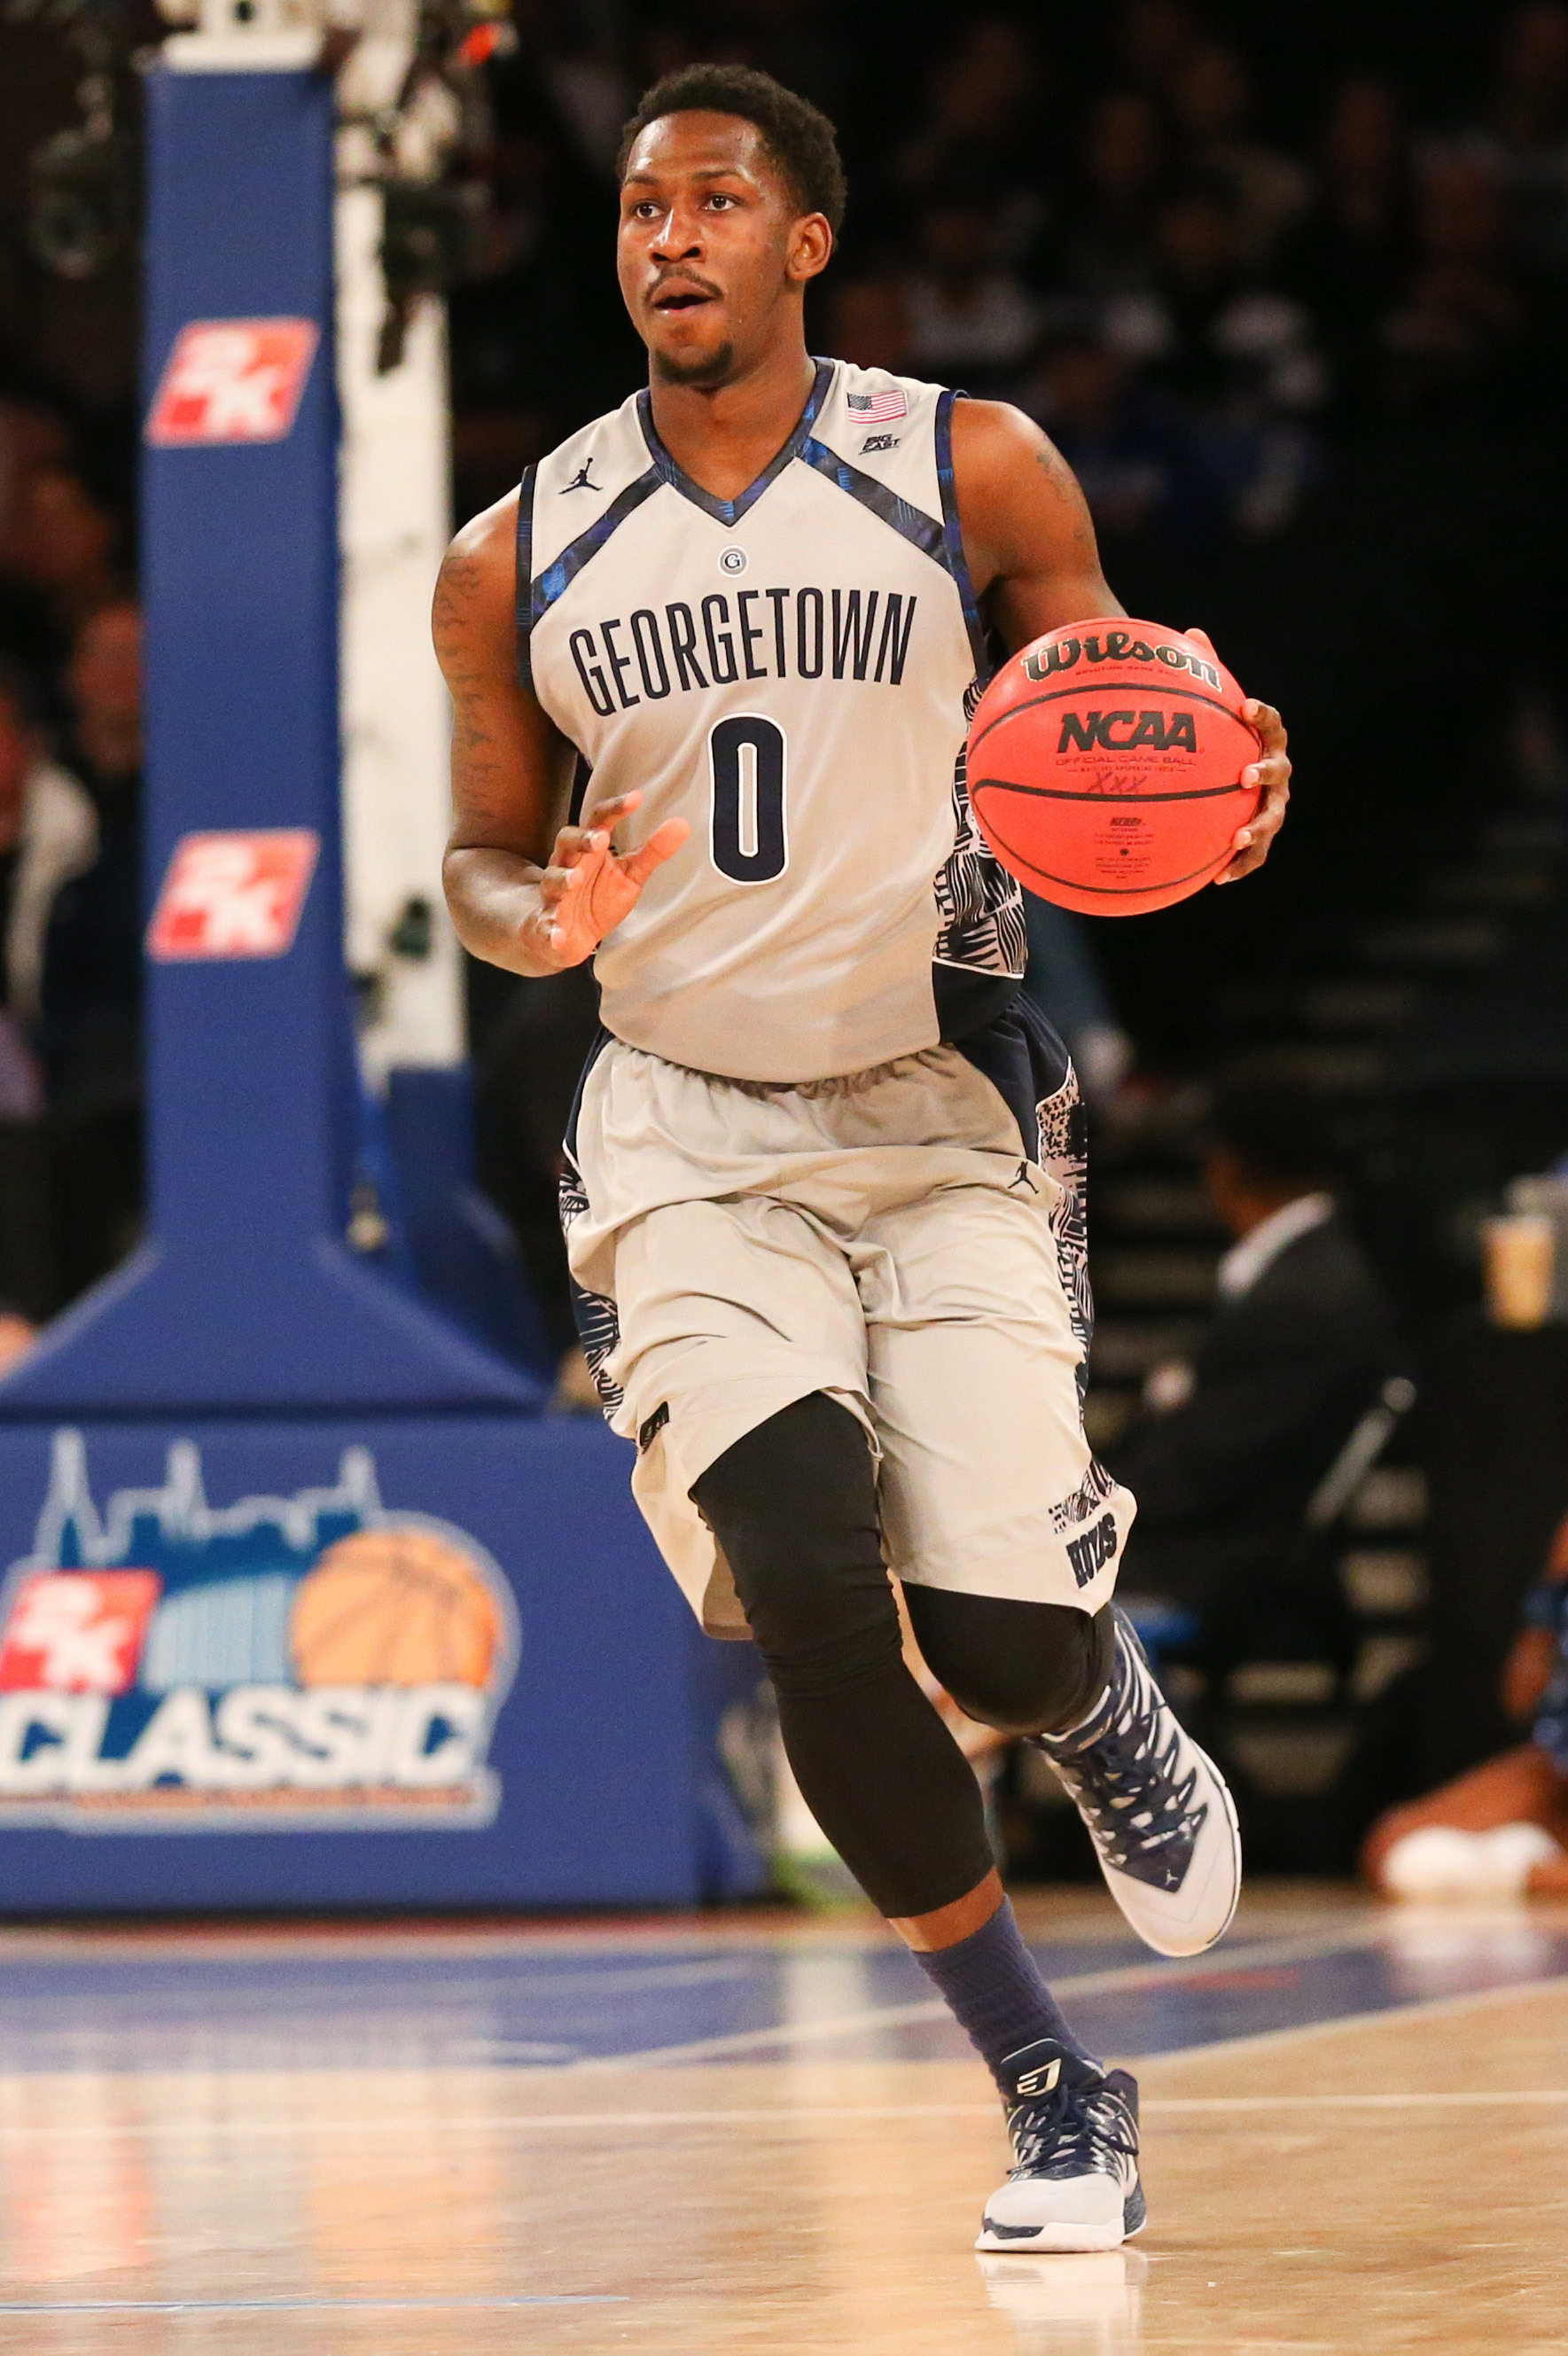 The Georgetown University men's basketball team is back in action on Saturday, Nov. 28, hosting Bryant University at Verizon Center.  Tipoff is slated for noon.